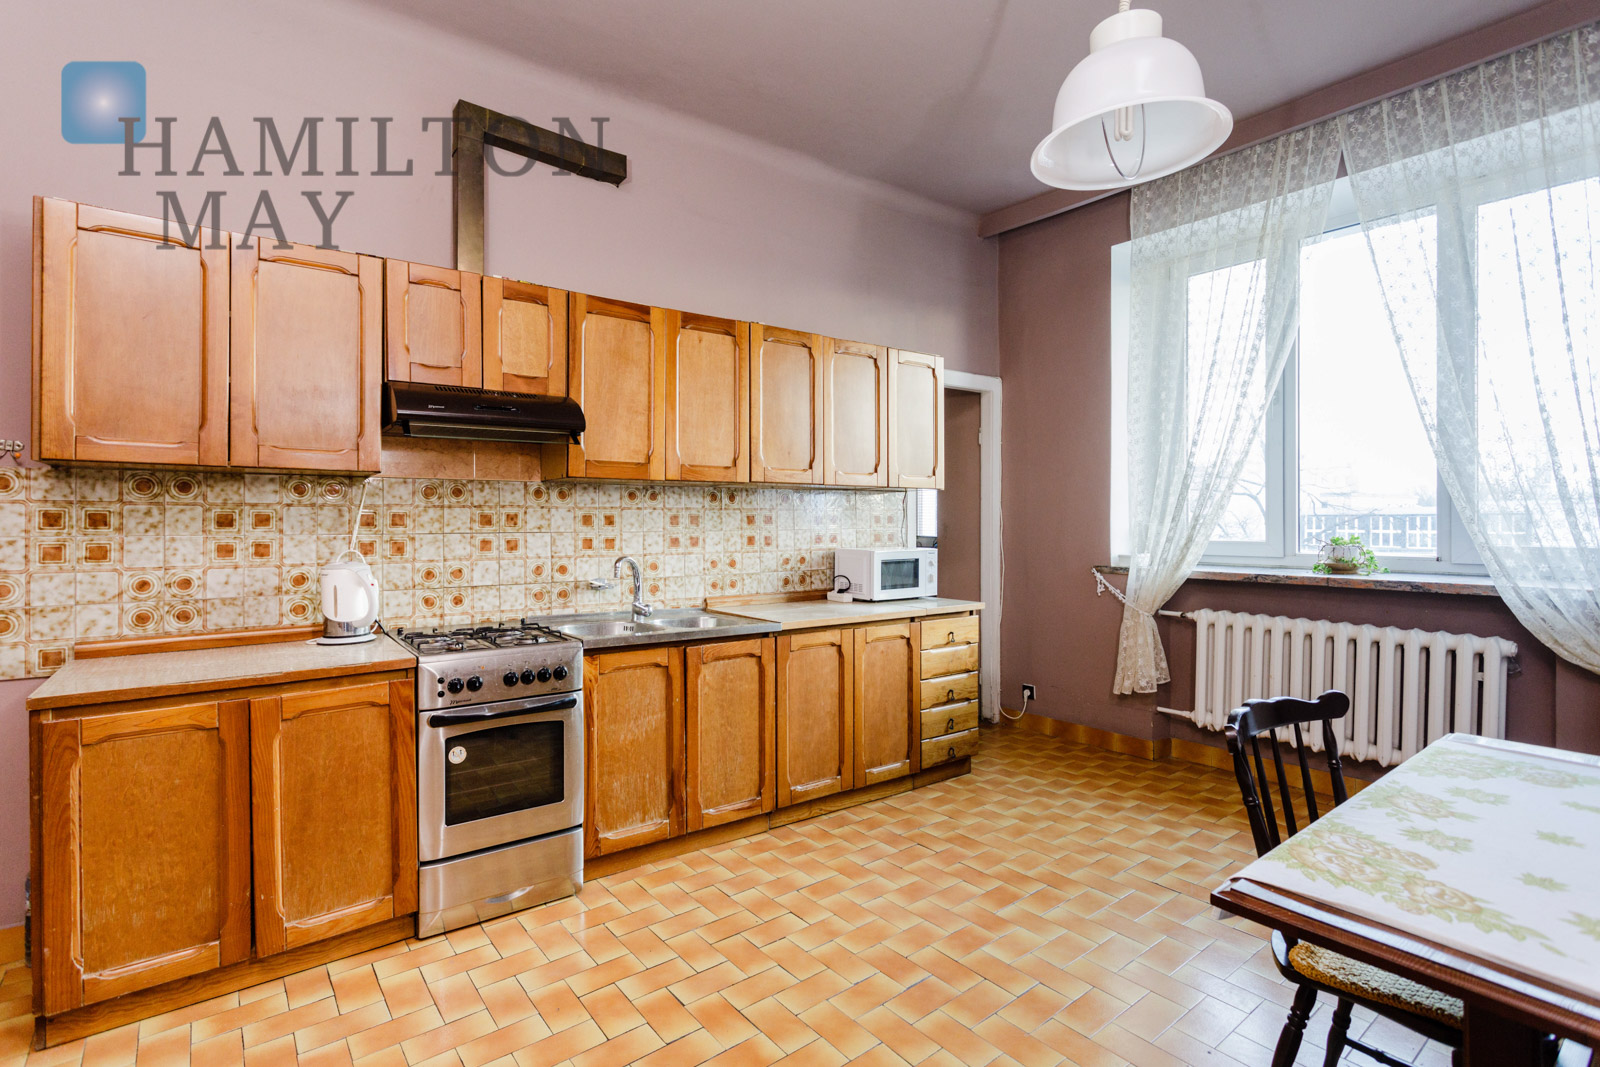 A unique, four bedroom apartment situated at the intersection of Trasa Łazienkowska and Rozbrat streets Warsaw for sale